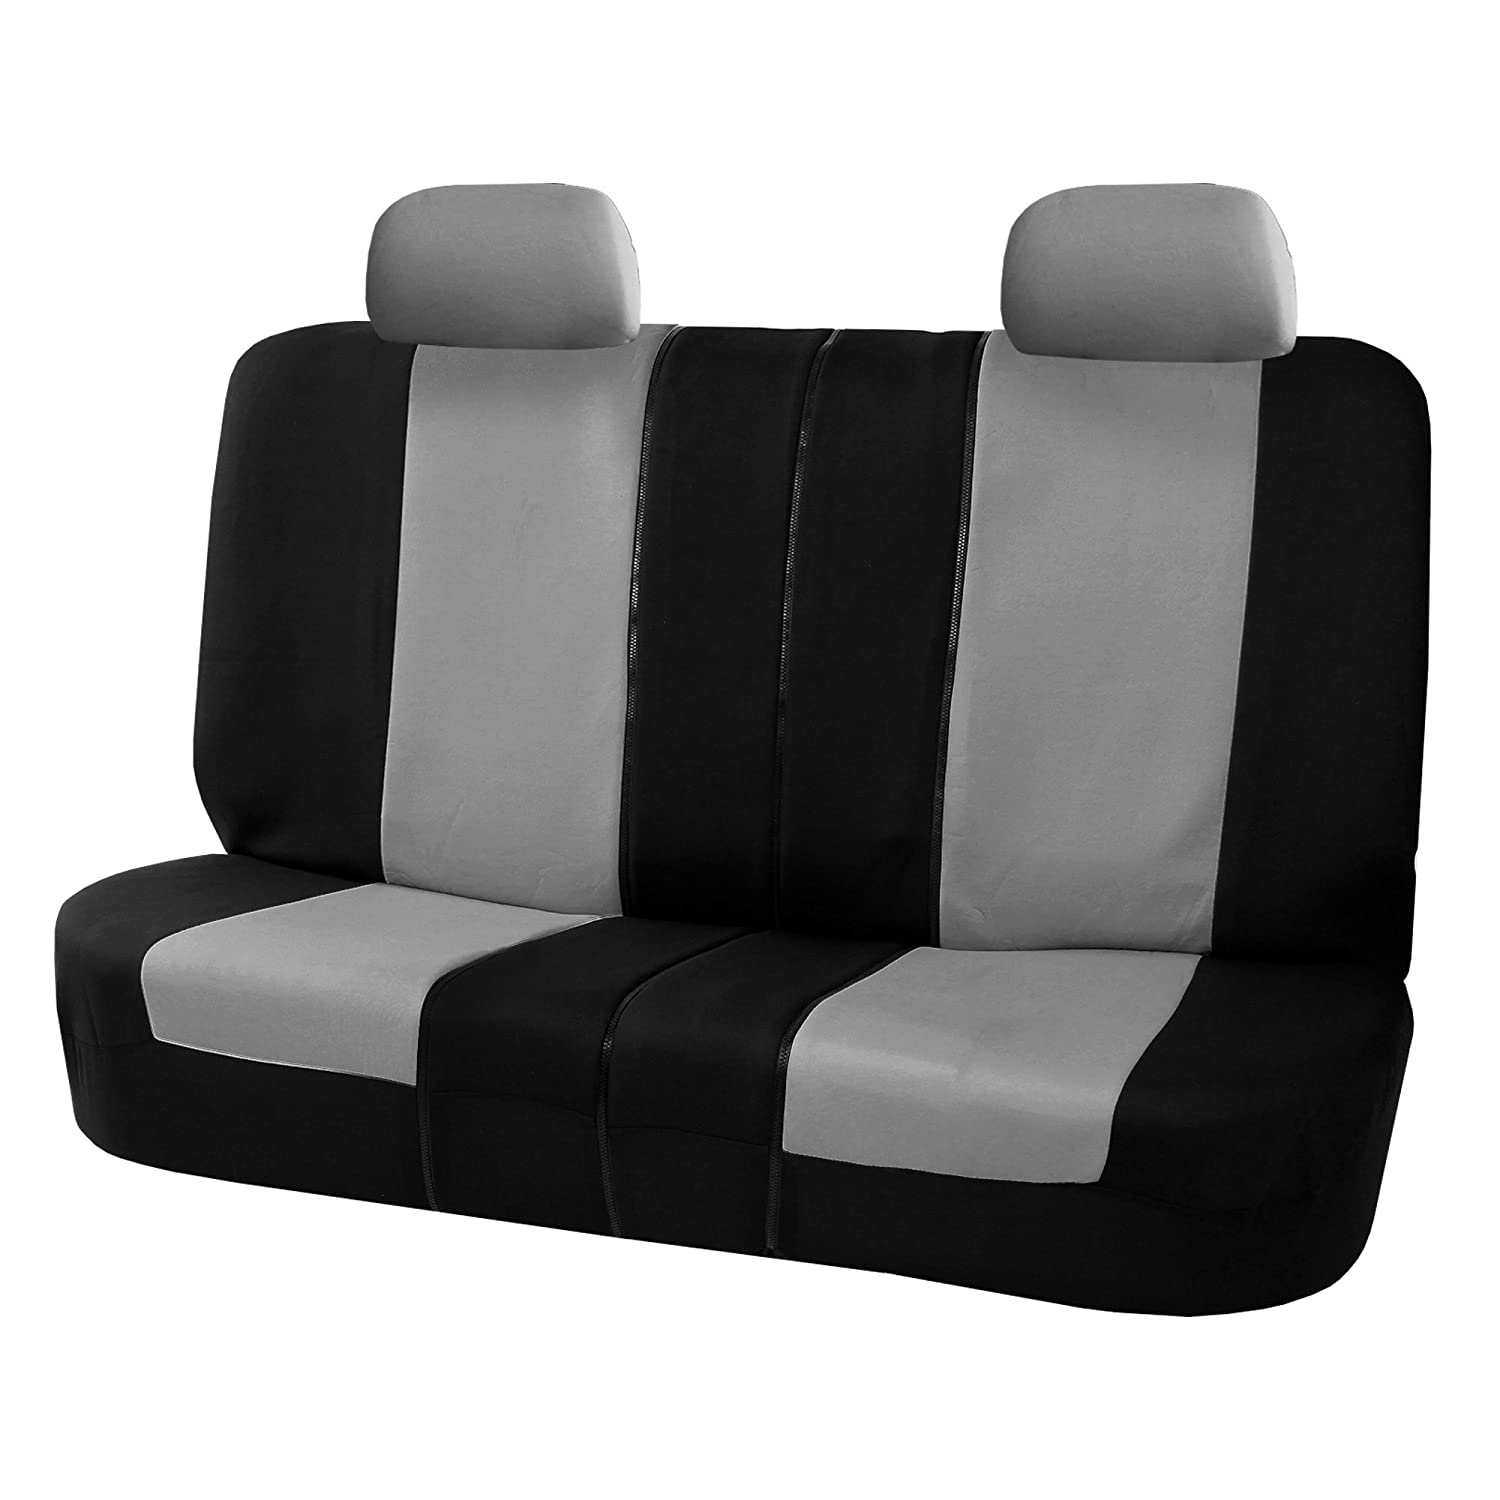 Fantastic Fh Fb051R012 Multifunctional Flat Cloth Bench Seat Covers Allow 40 60 60 40 50 50 Split Gray Black Color Caraccident5 Cool Chair Designs And Ideas Caraccident5Info